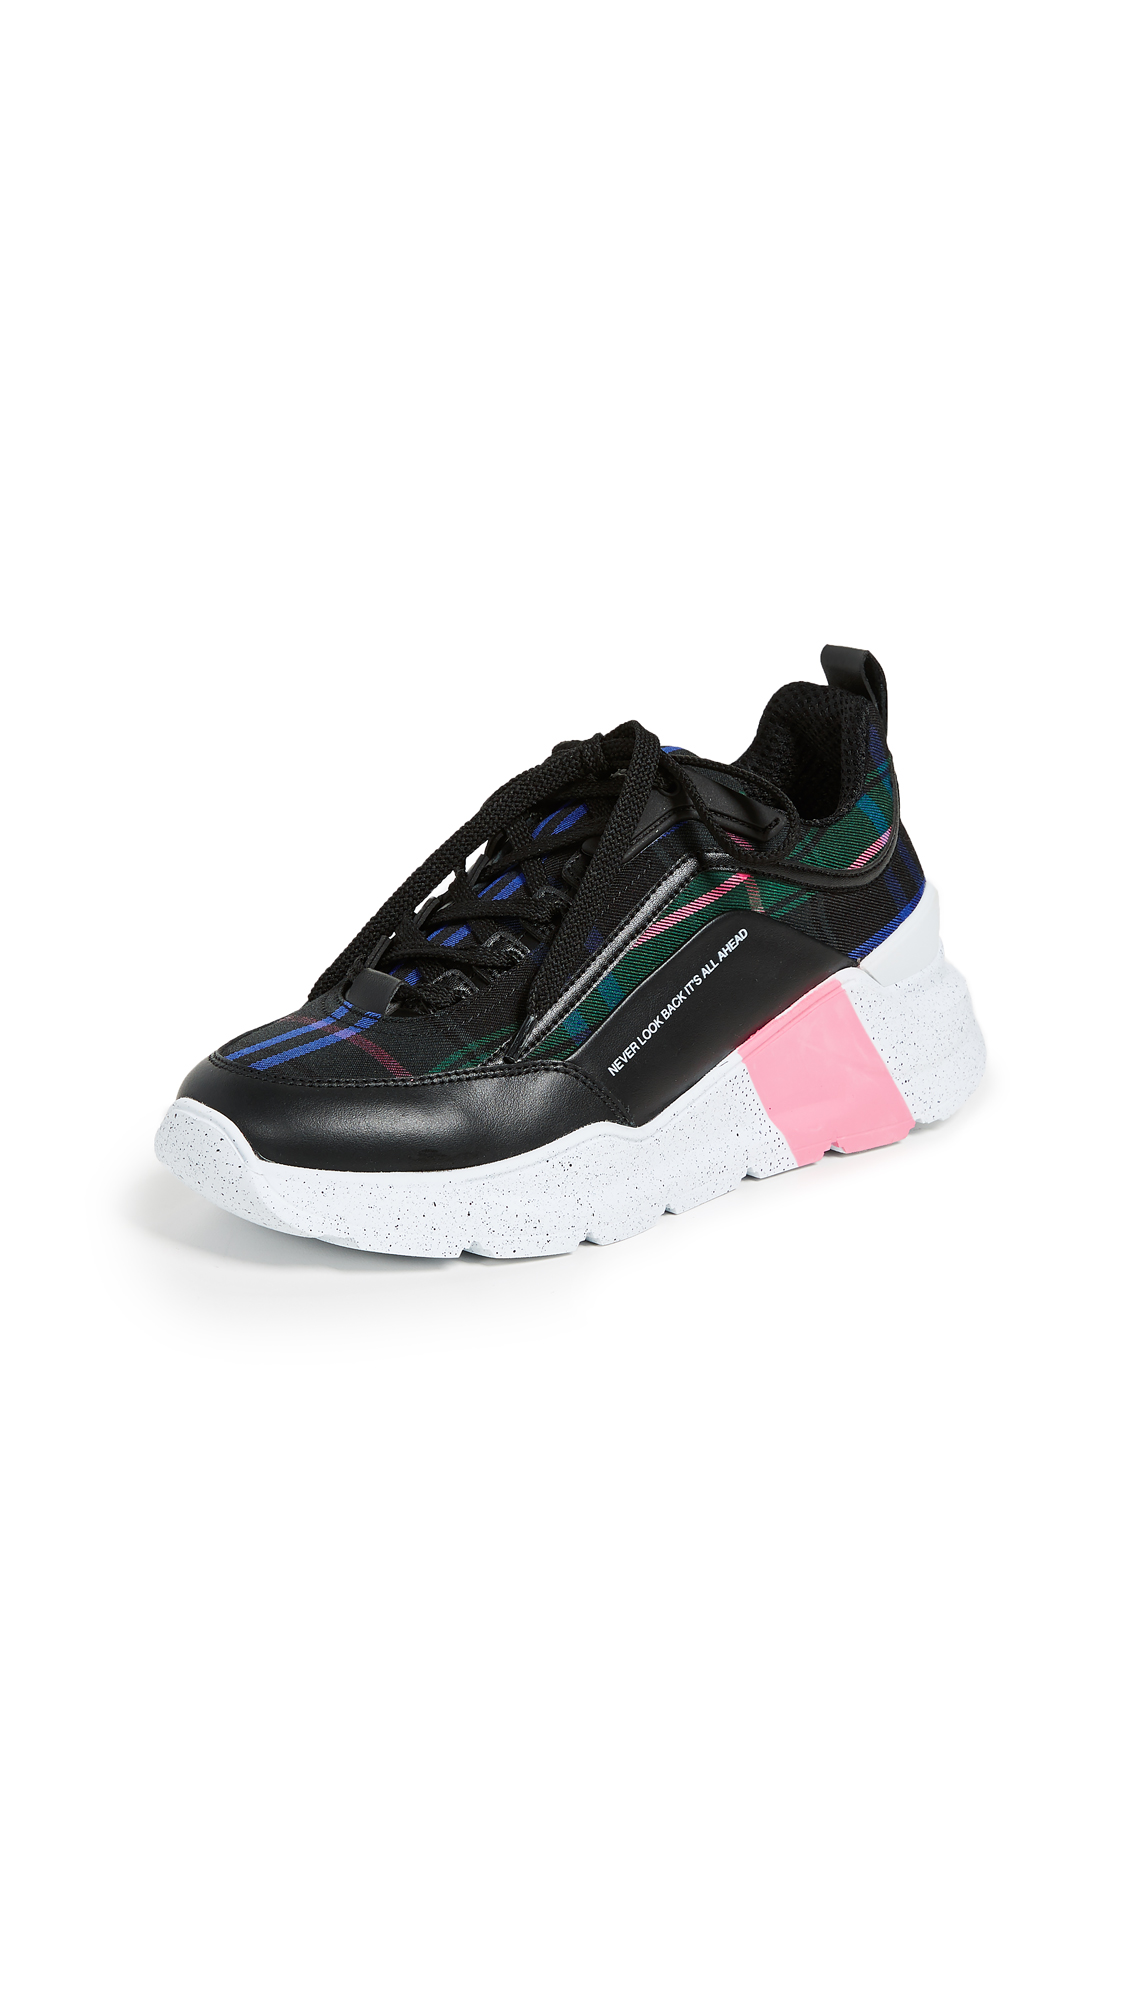 Hiking Trainer Sneakers in Black